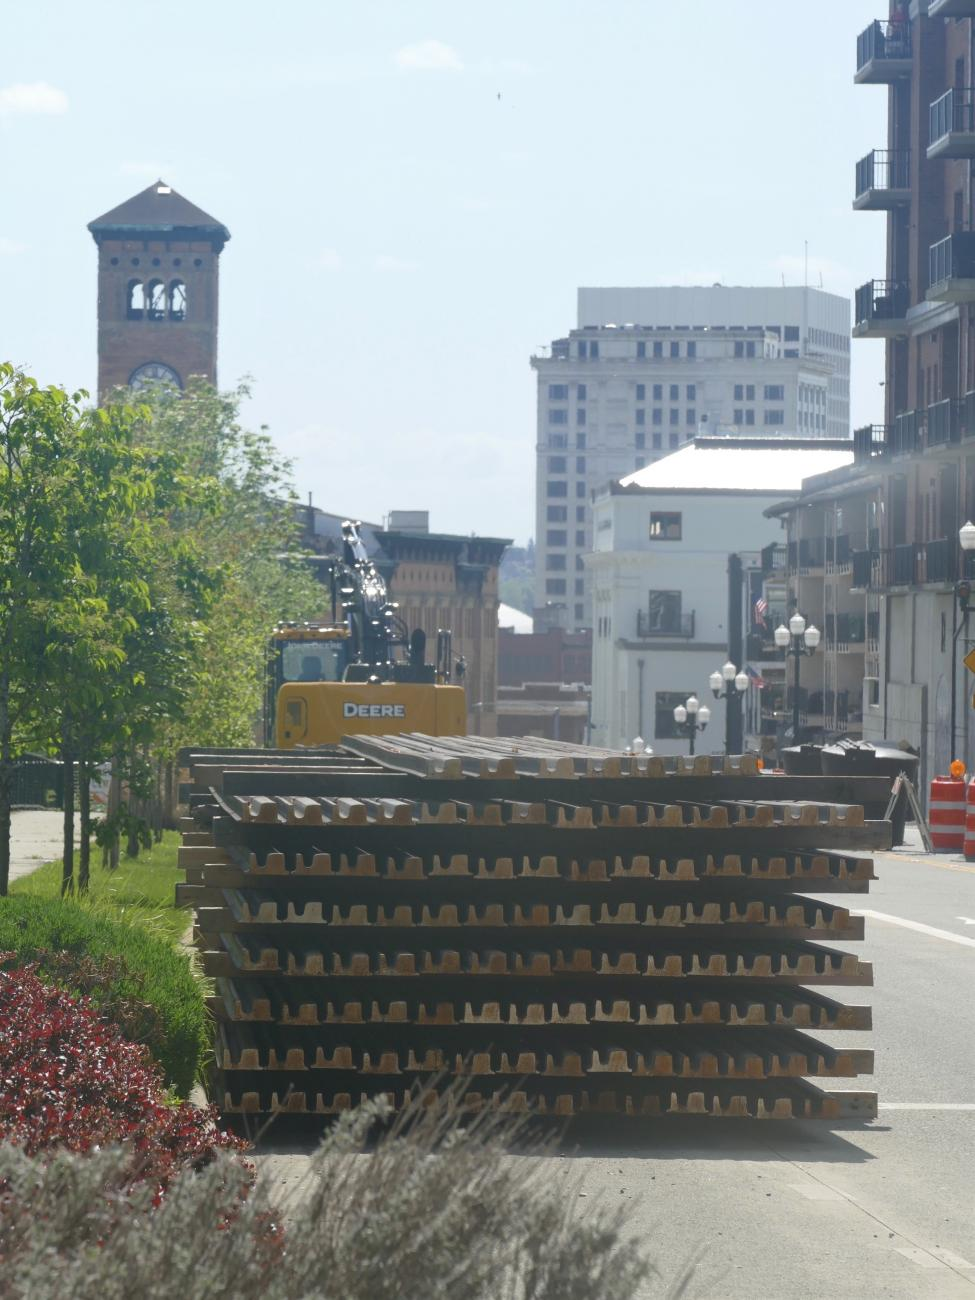 The Old City Hall is seen in the background behind a set of link rails for installation.